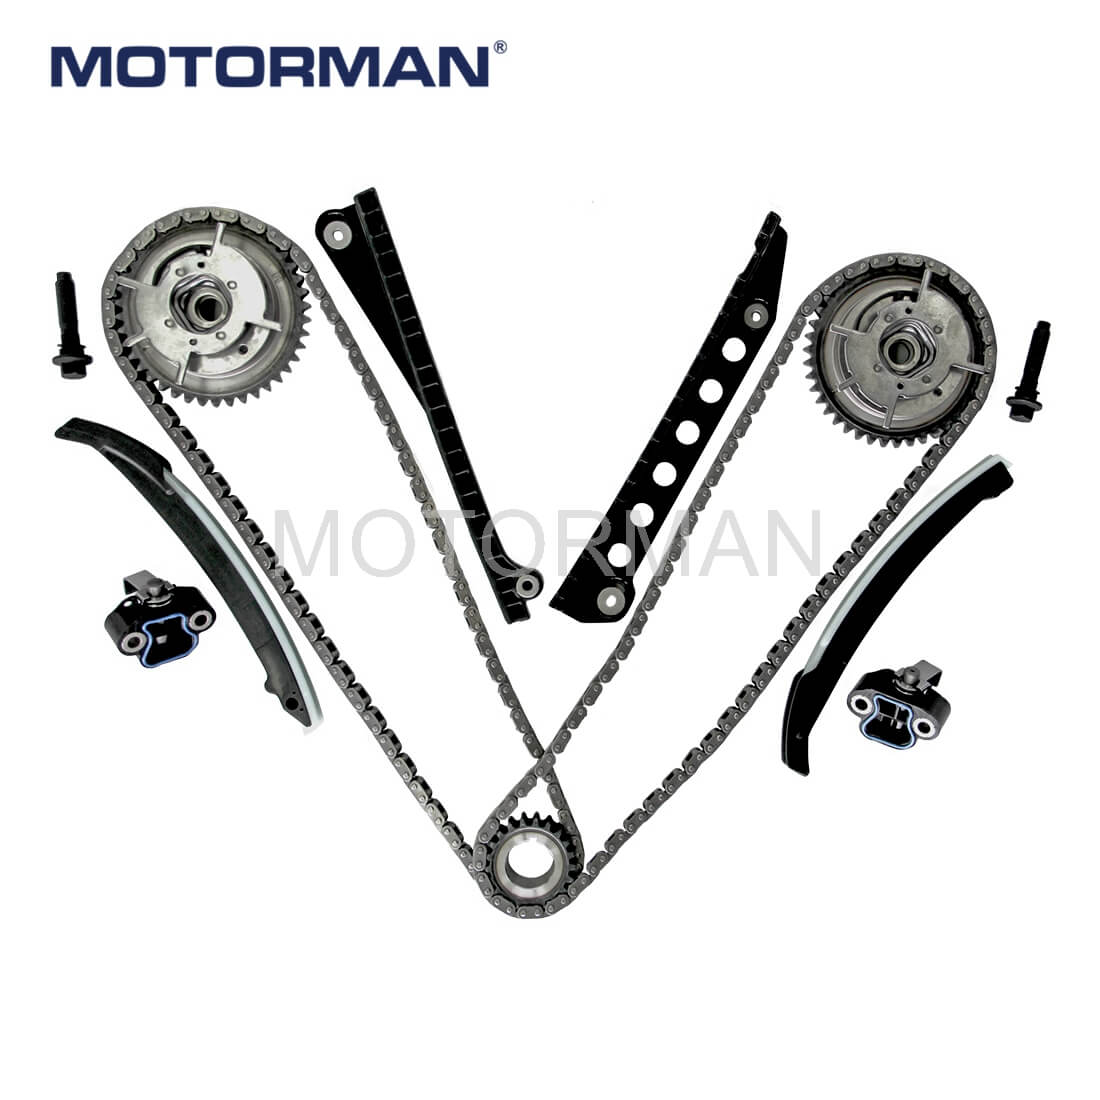 Timing Chain Kits 9-0391SB/76112